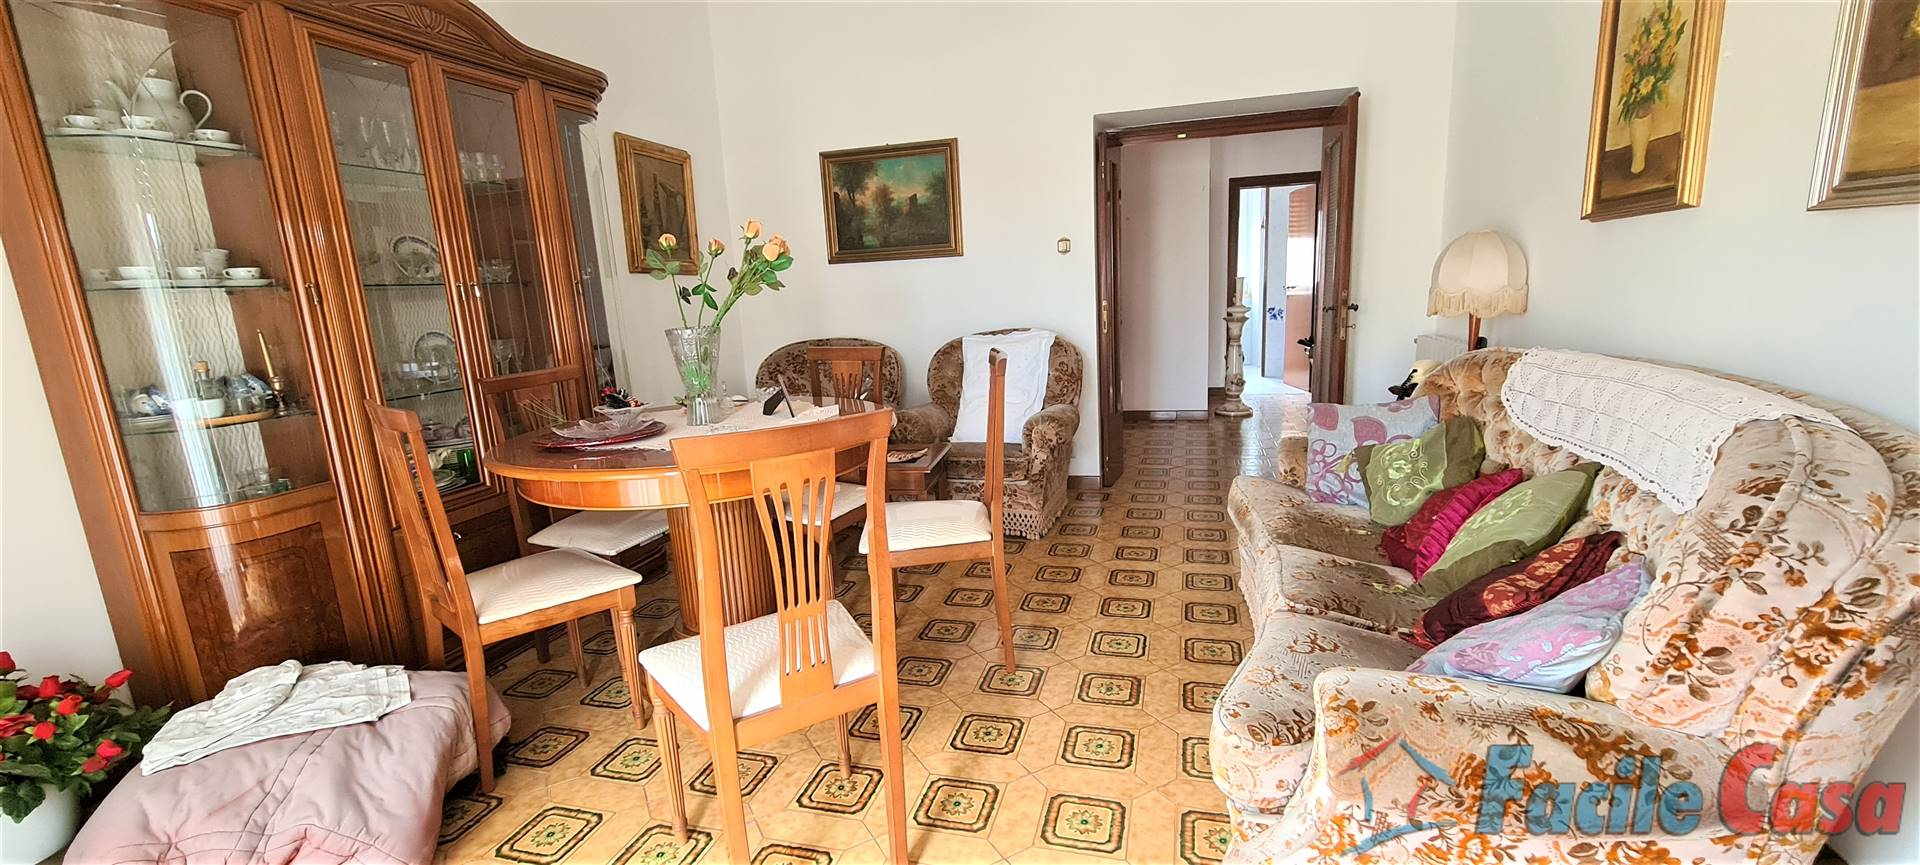 FORMIA, Apartment for sale of 100 Sq. mt., Good condition, Heating Individual heating system, Energetic class: G, placed at 2° on 5, composed by: 3